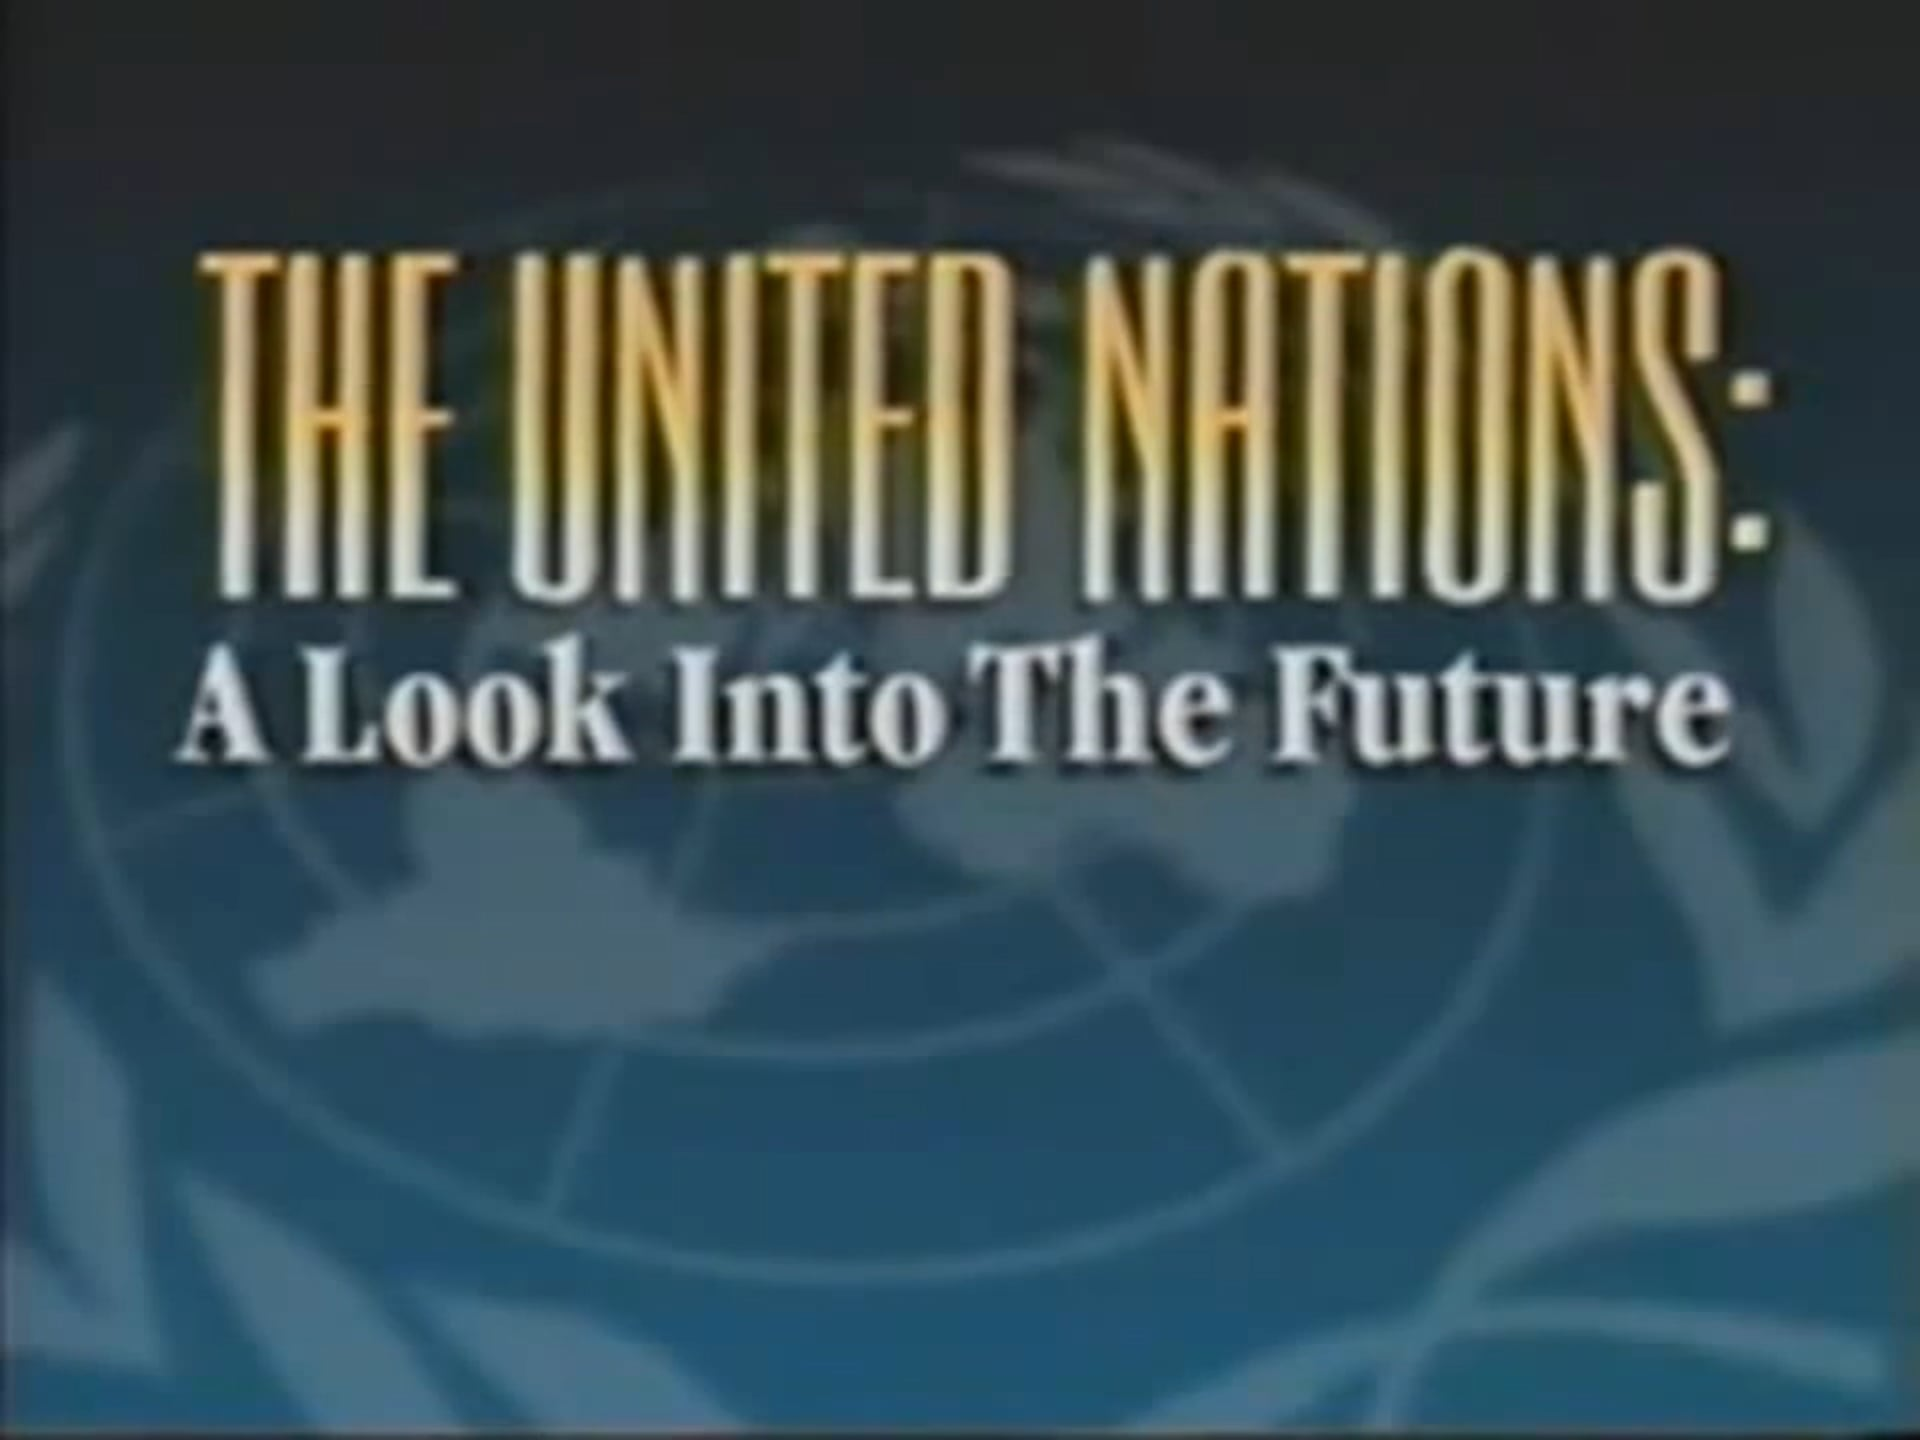 The United Nations. A Look Into the Future.